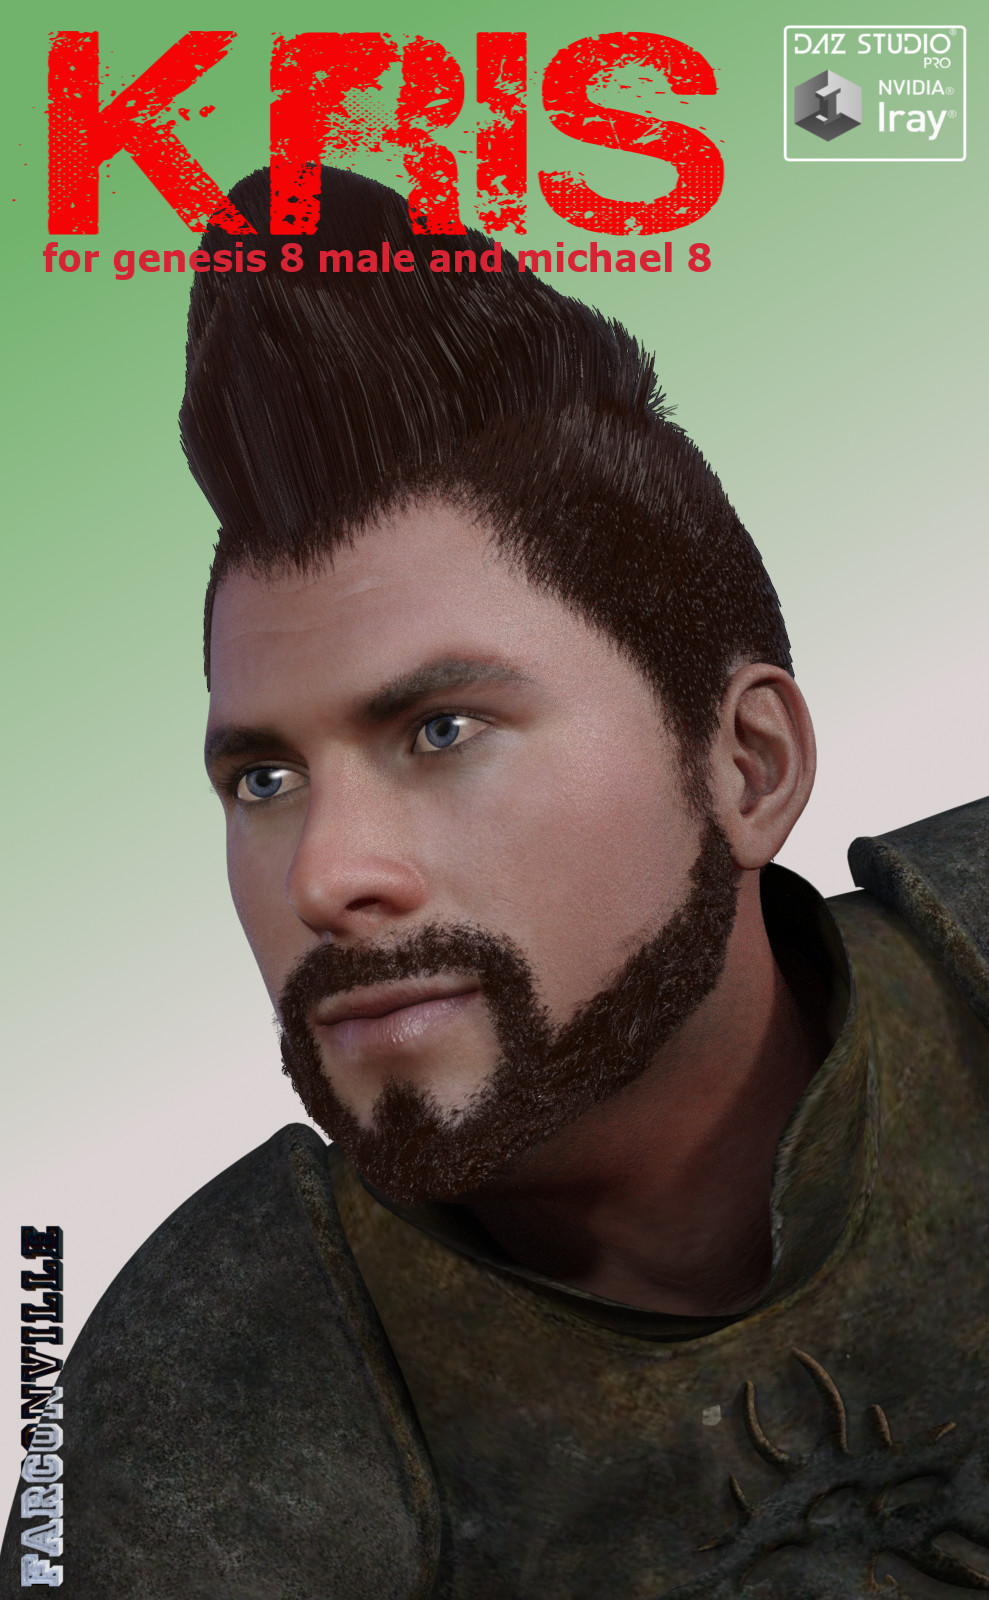 Kris for Genesis 8 Male and Michael 8